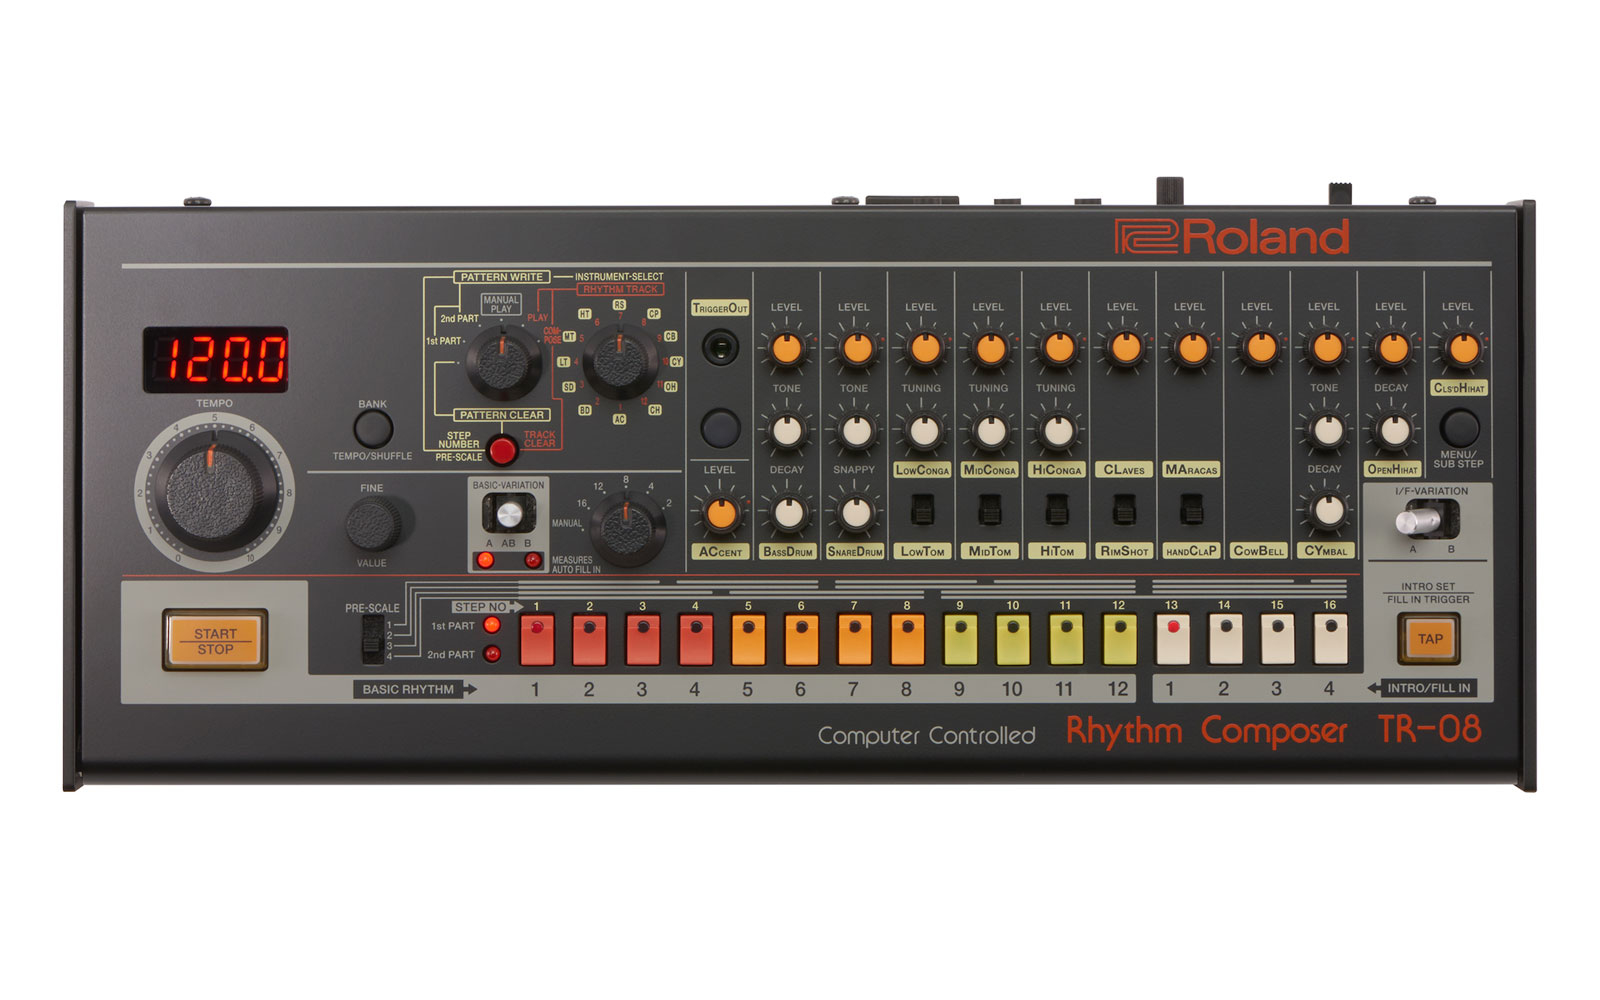 Roland revives the TR-808